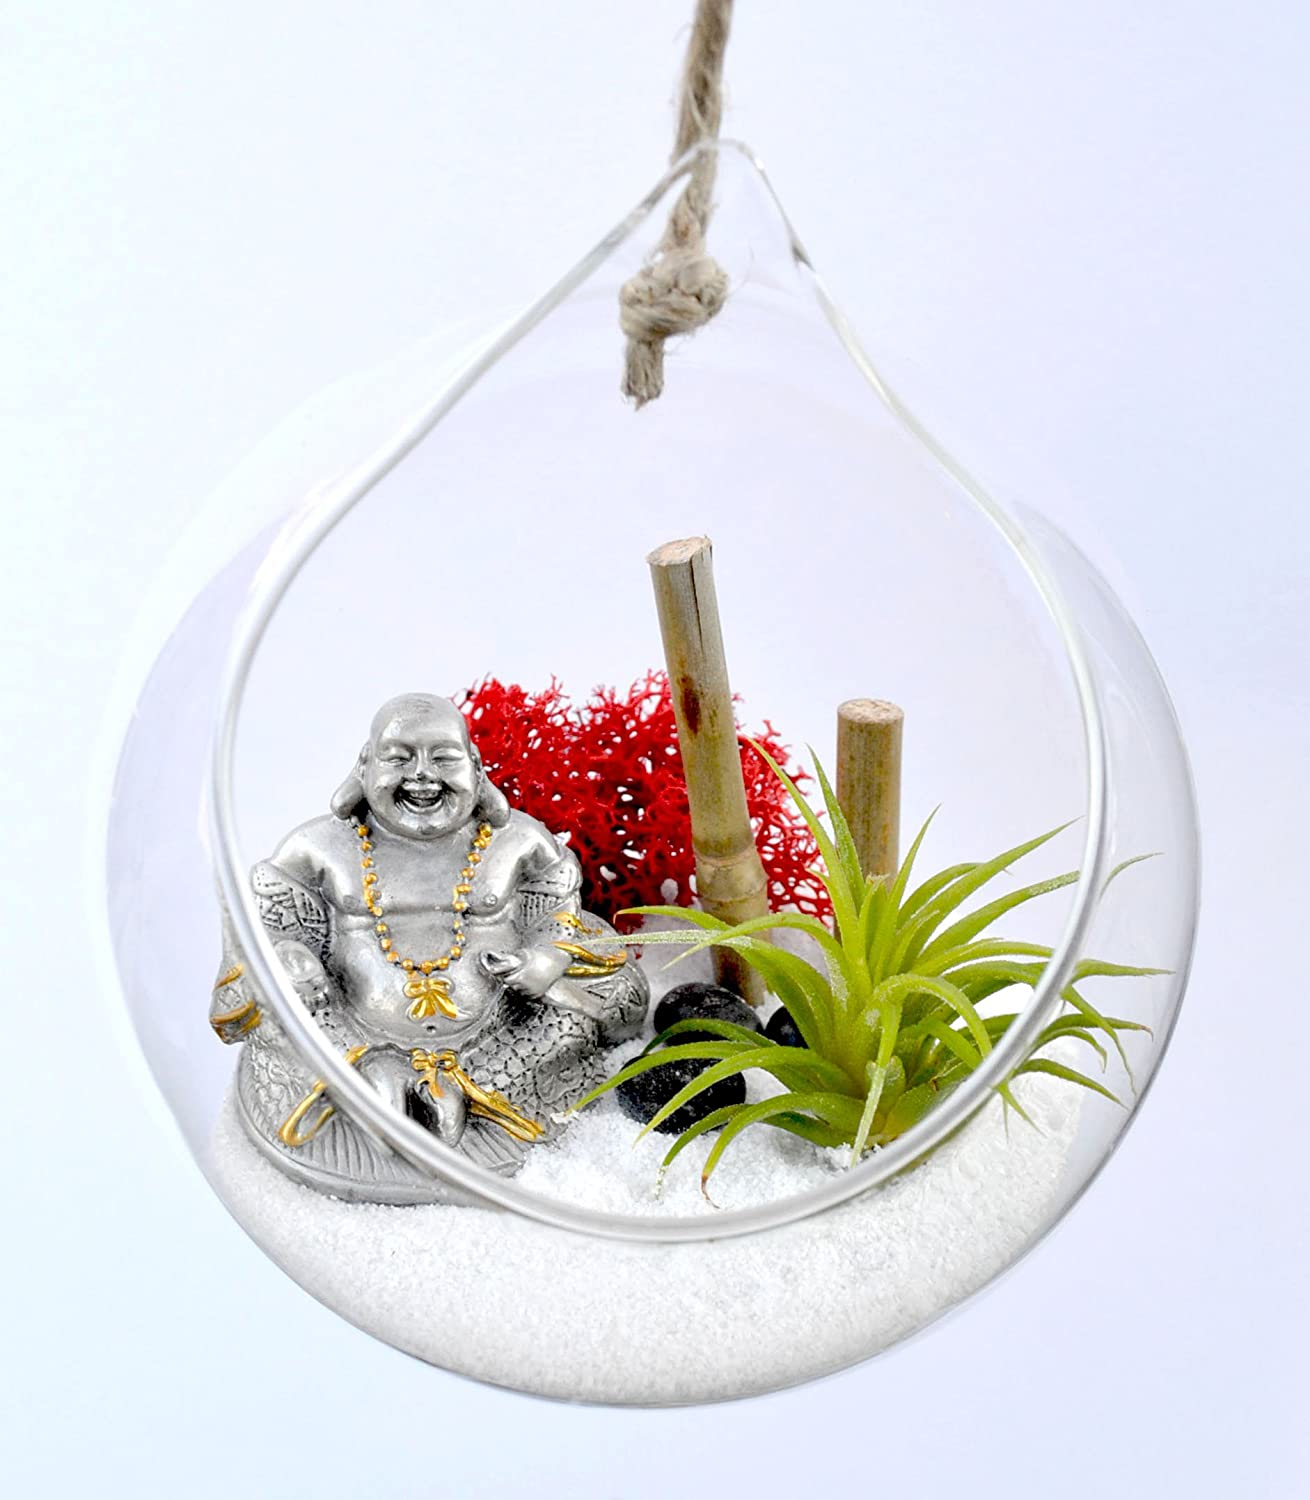 Pixie Glare Hanging Glass Terrarium Zen Garden Kit. With Pewter Buddha Figurine, Air Plant, Bamboo and More